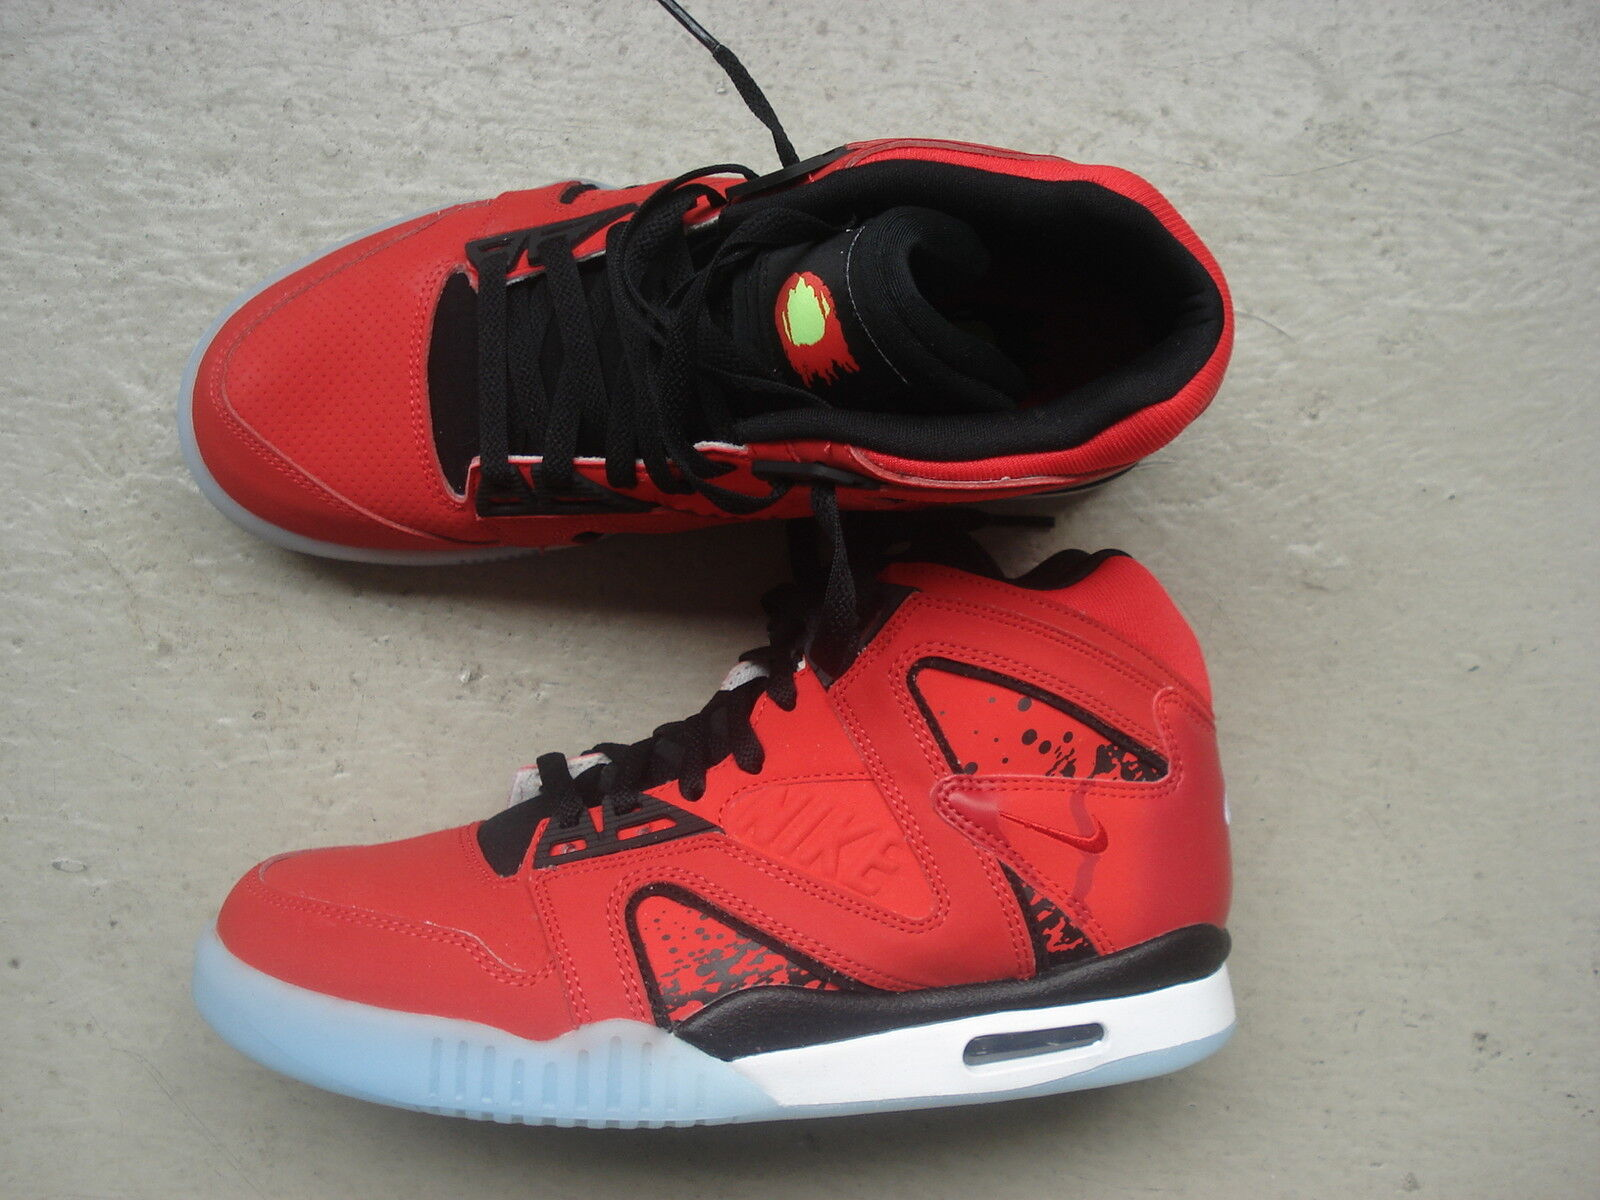 """Nike Challenge Air Tech Challenge Nike Hybrid 42.5 """"Chilling ROT"""" ROT-Blk-Weiß c917af"""